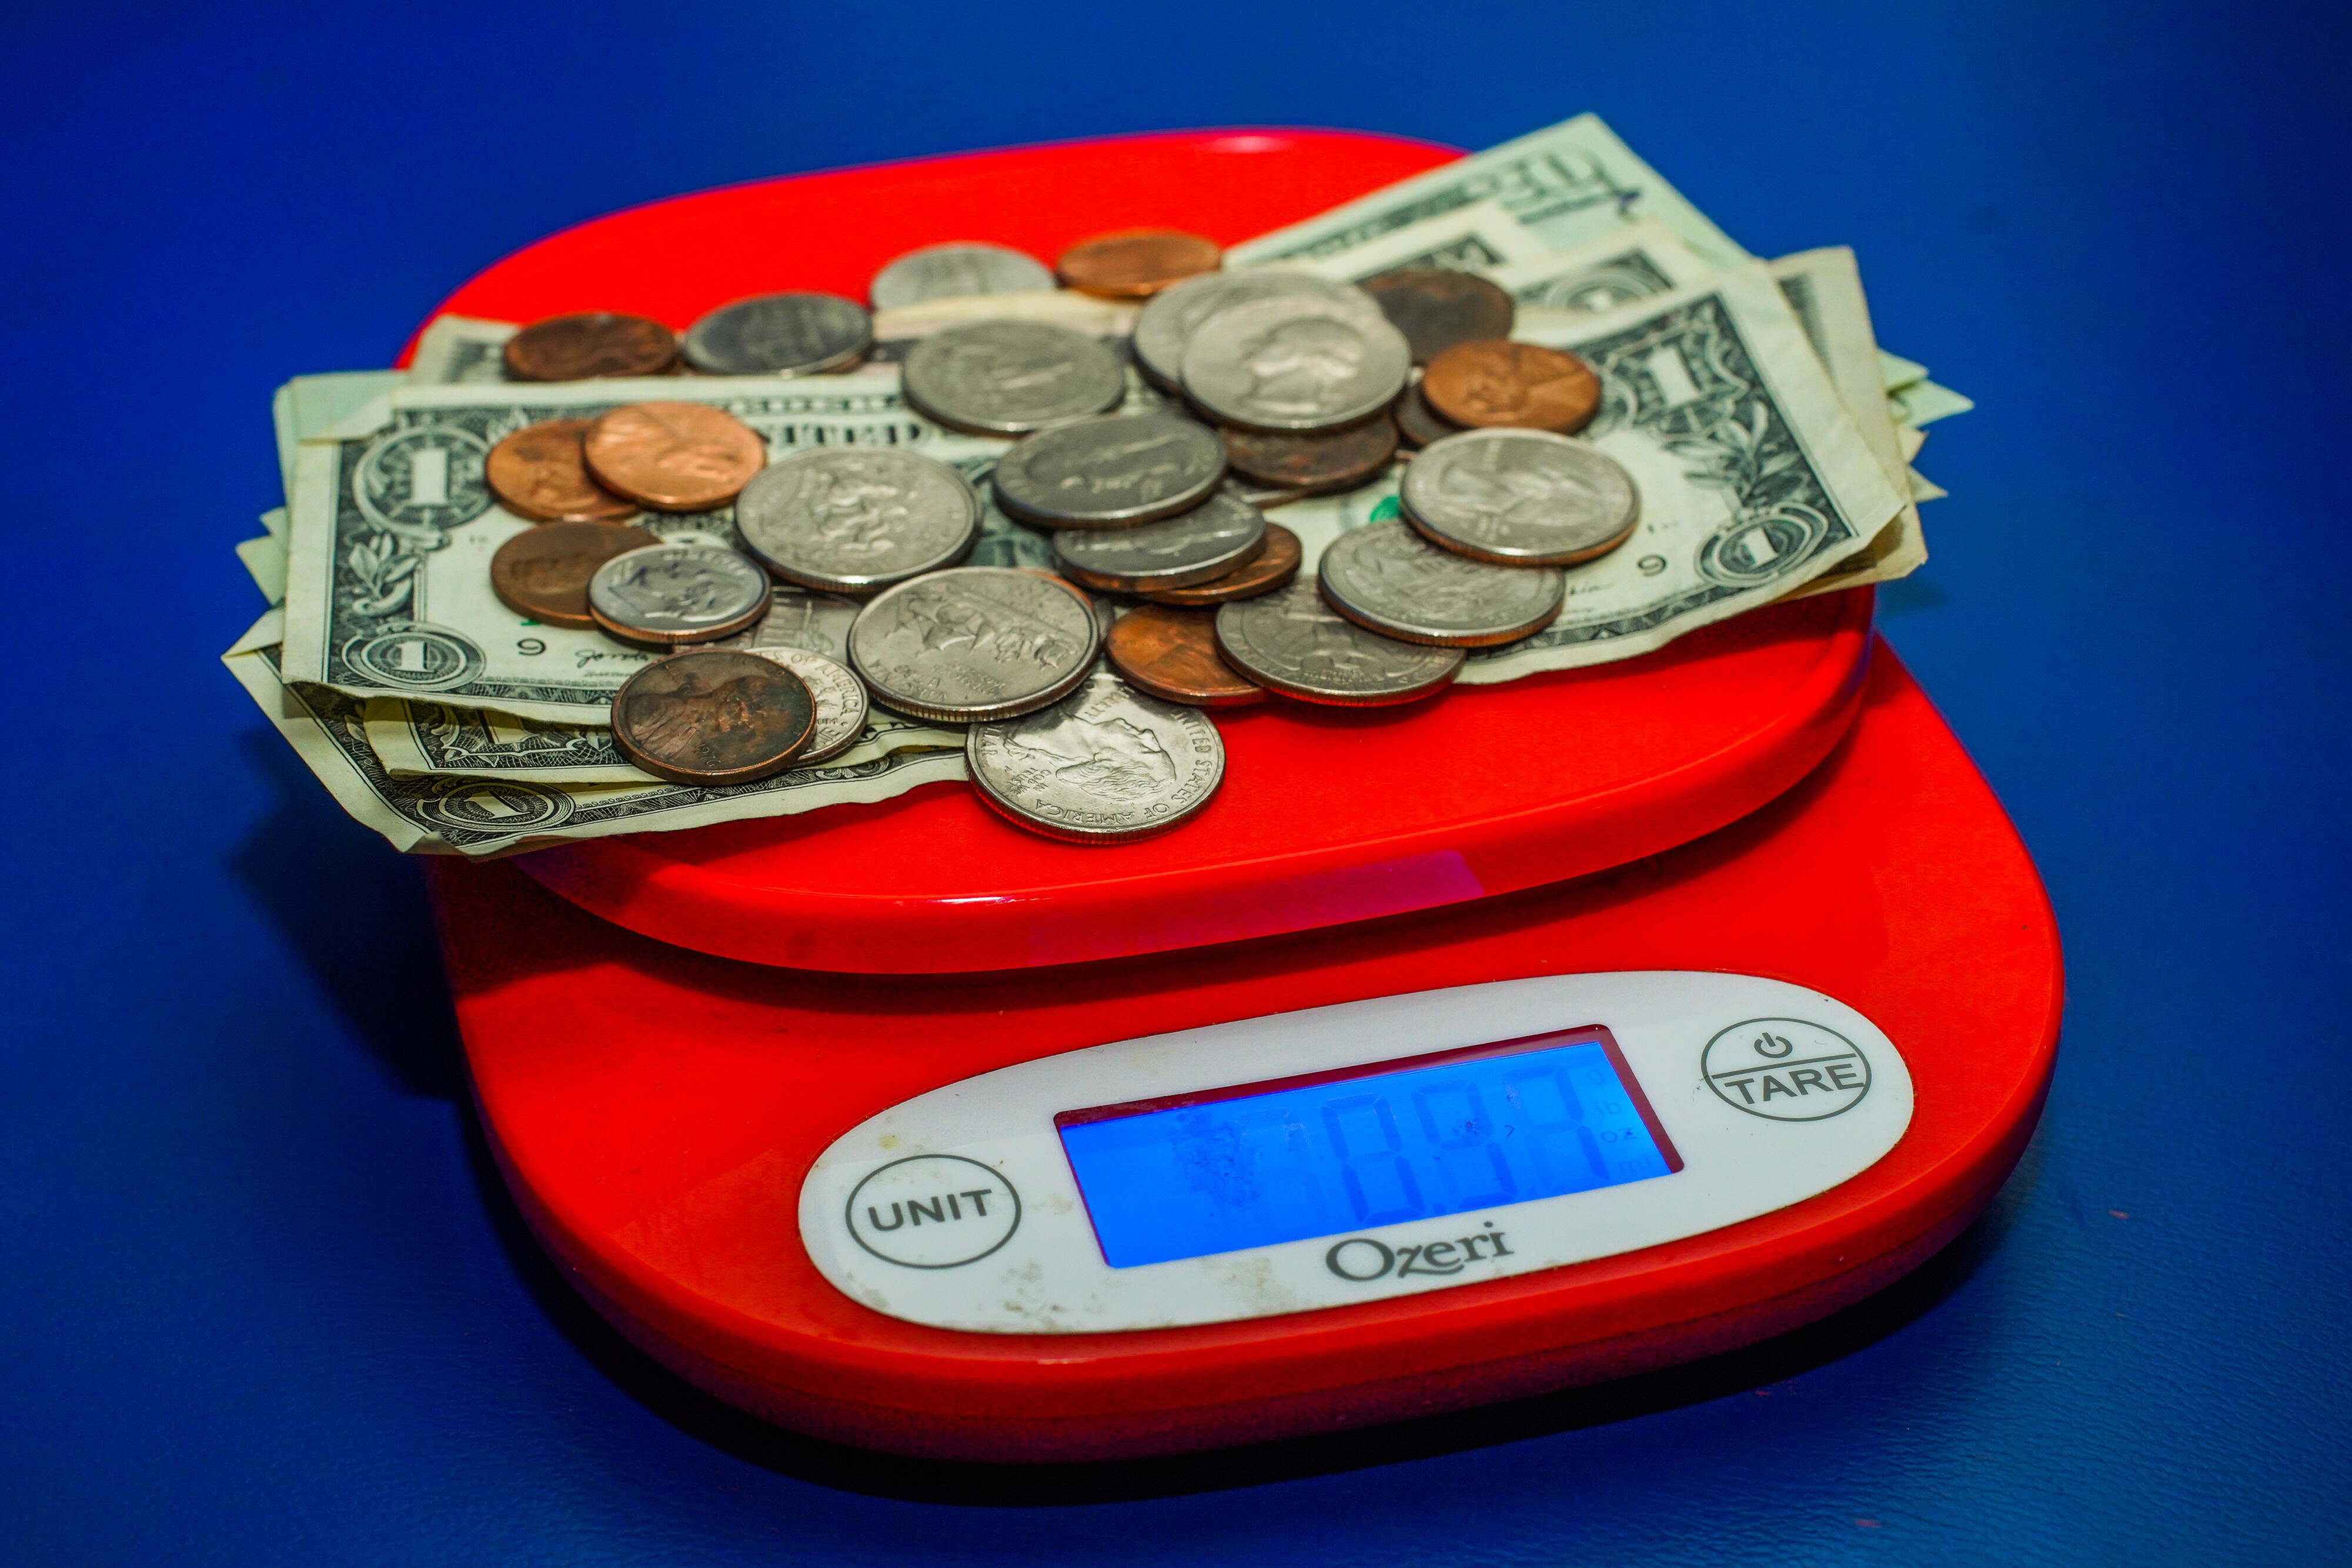 010-stimulus-piggy-bank-tear-falling-money-clip-weighing-cash-scale